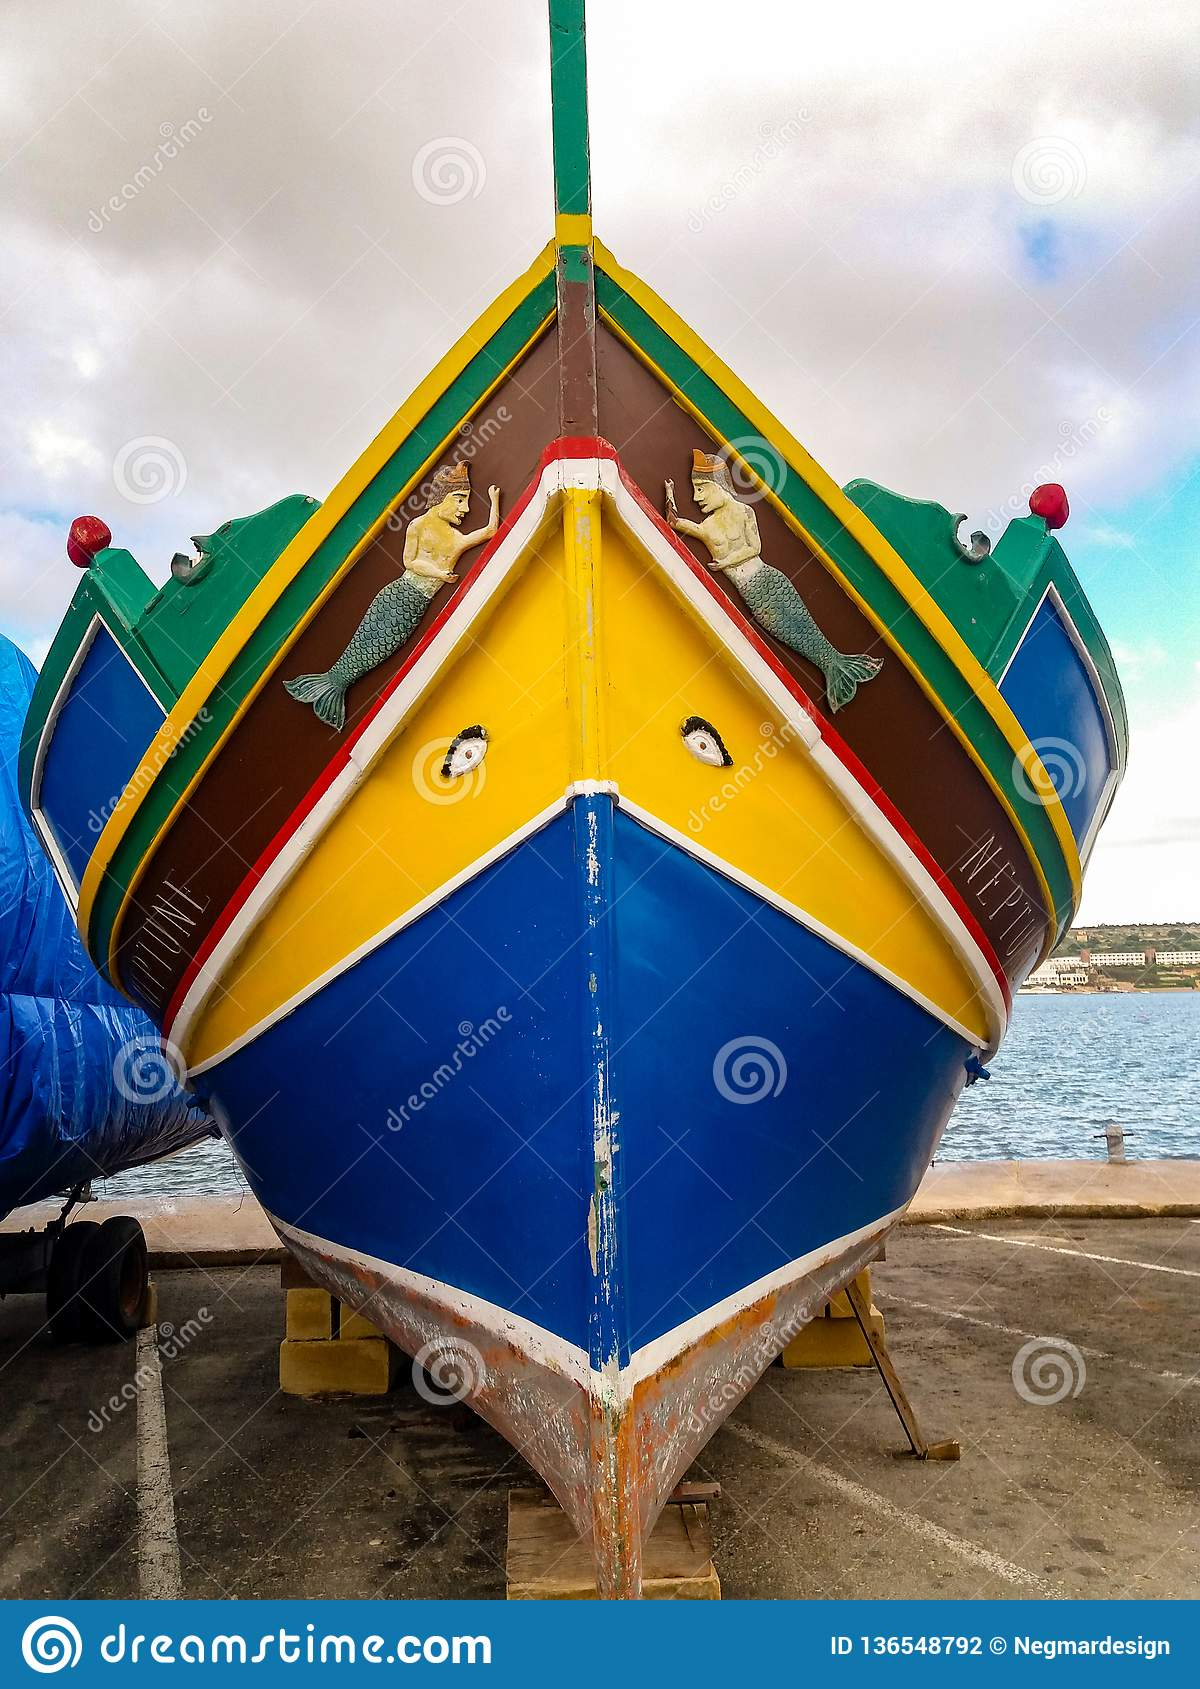 Mellieha, Malta, 30 december 2018 - Traditional colorfull maltese fishing boat, Maltese luzzu, with Eyes of Osiris